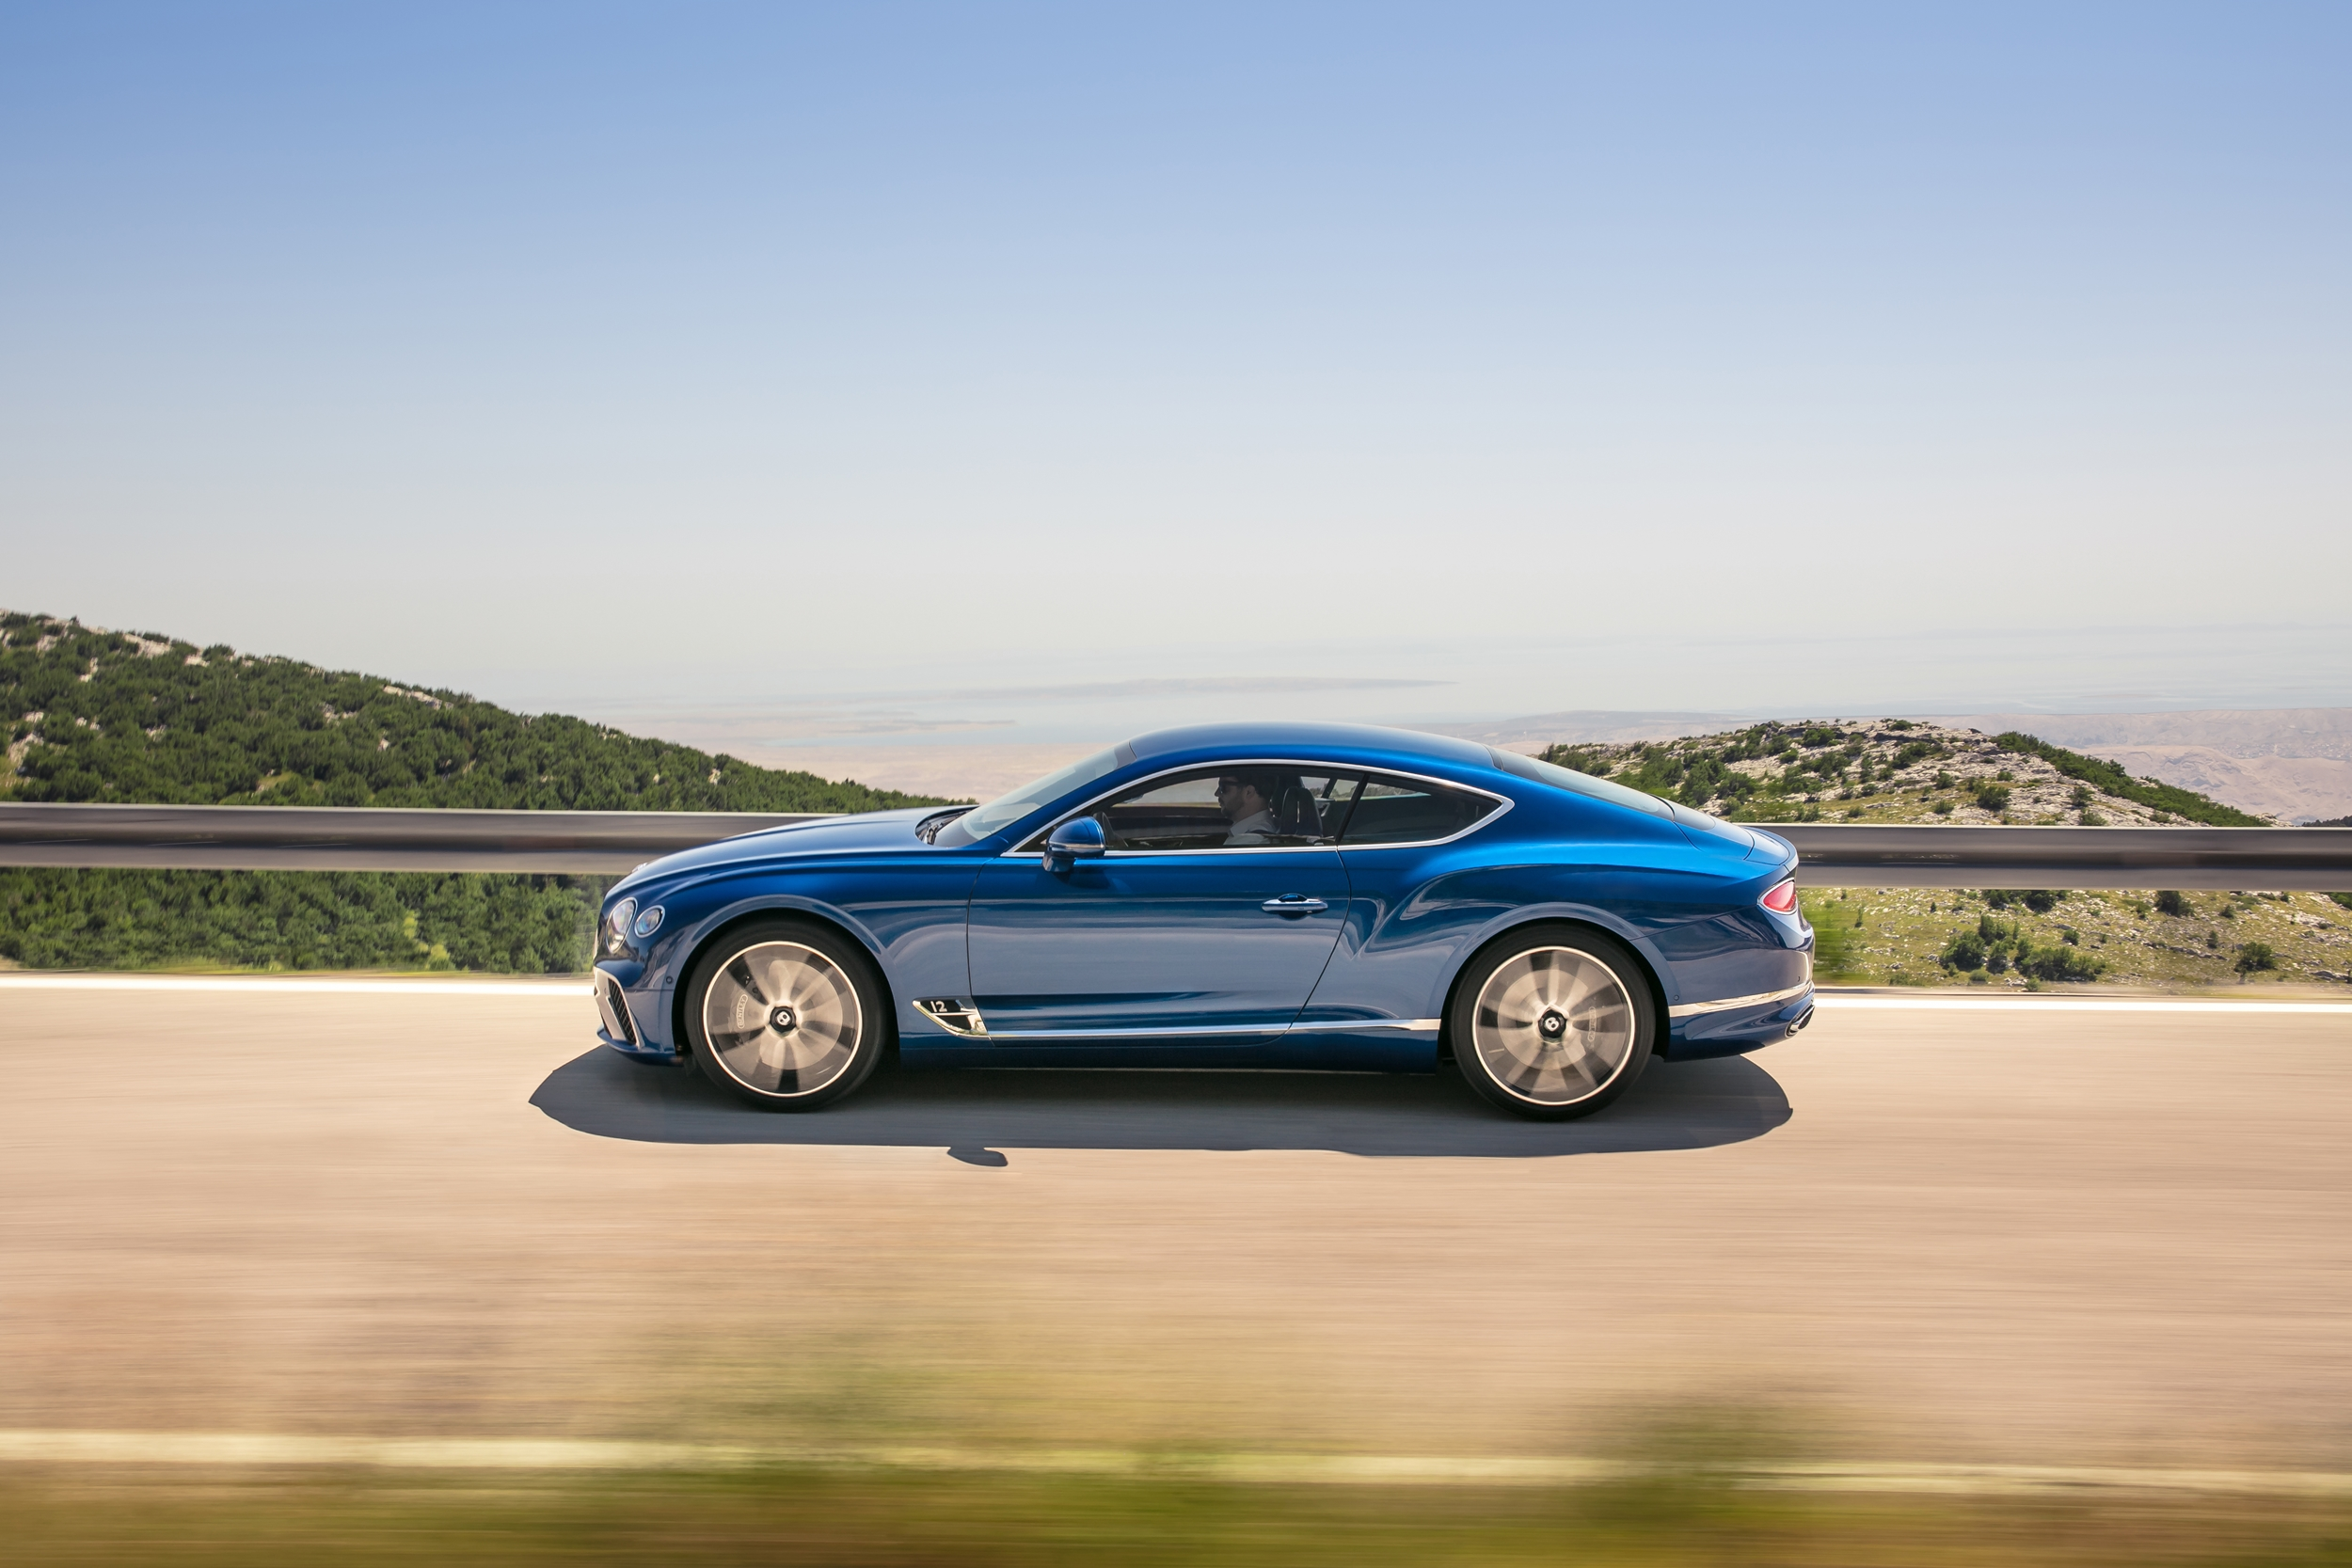 Bentley Continental GT side picture